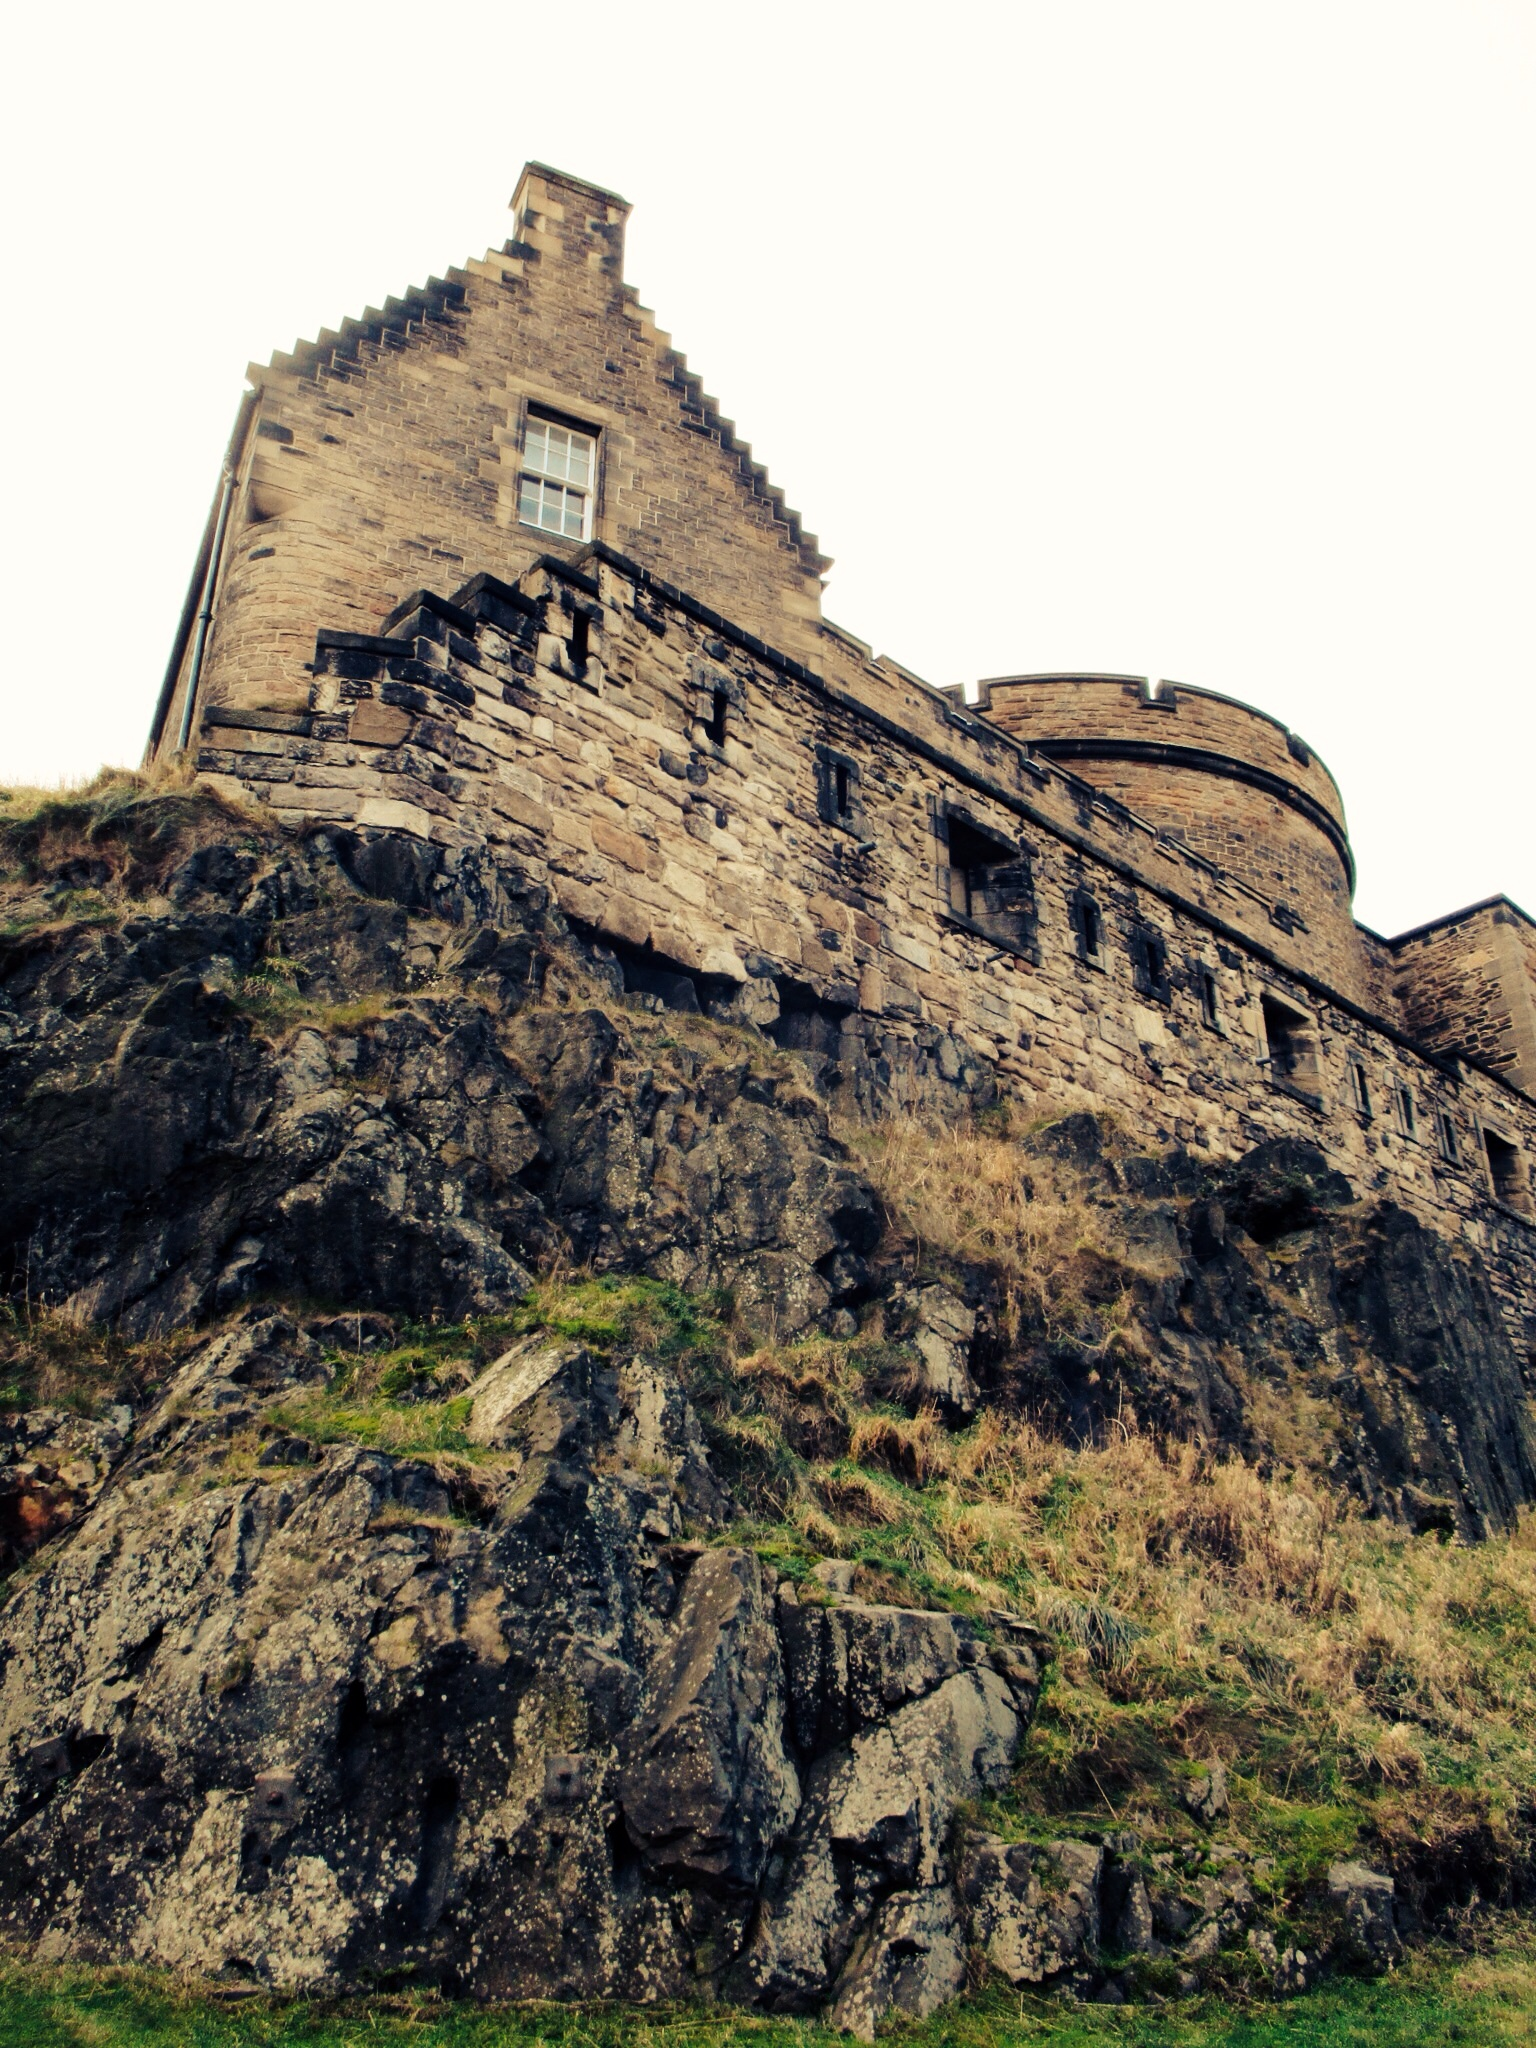 View of the Edinburgh Castle from Granny's Greens